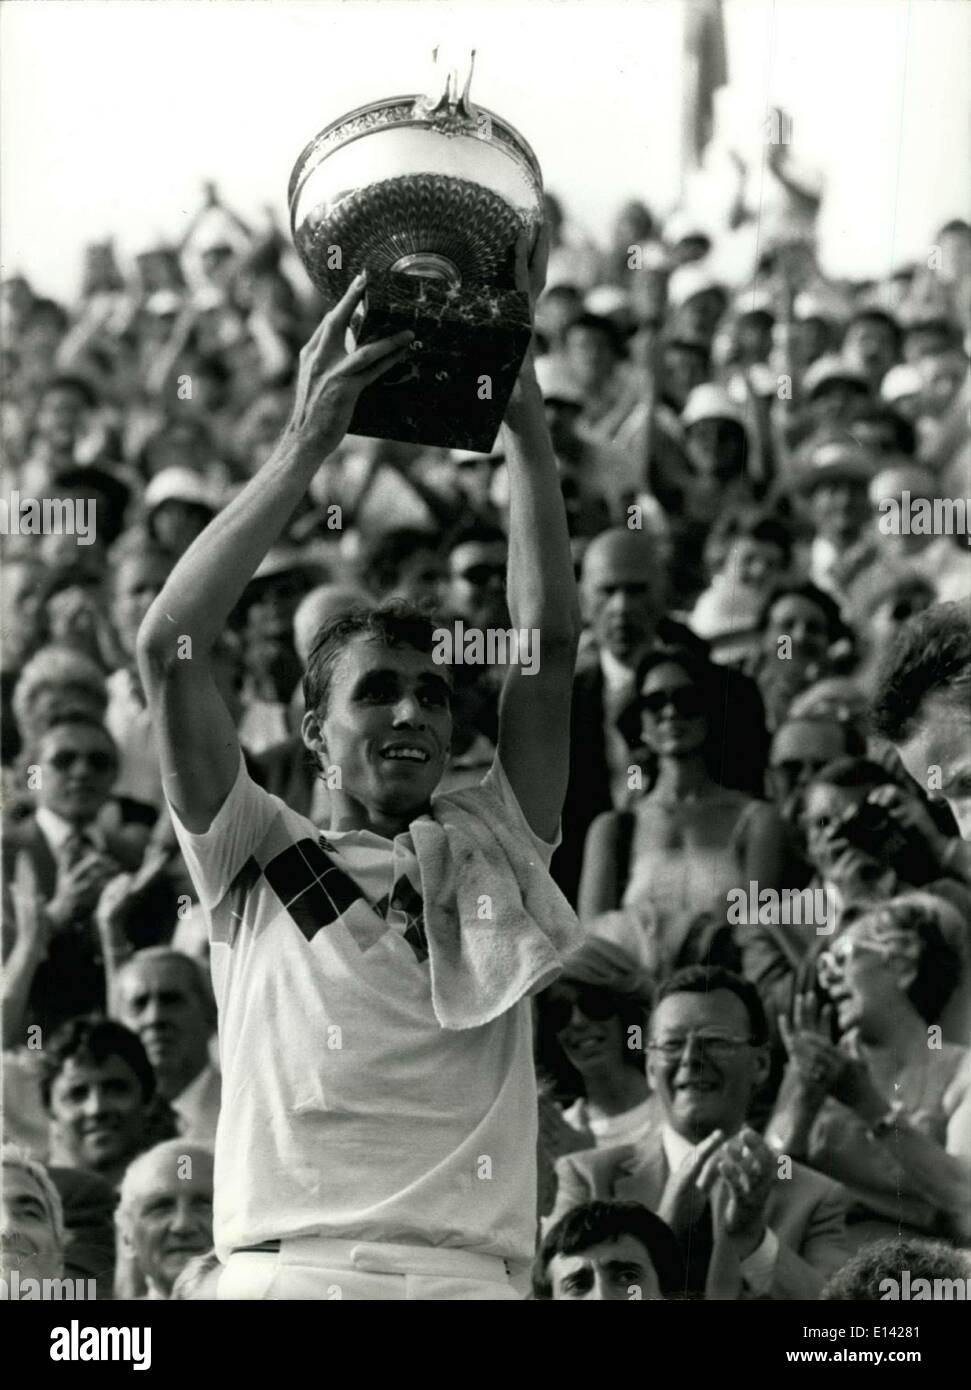 Mar. 31, 2012 - Ivan Lendl wins 1984 French open. Stock Photo